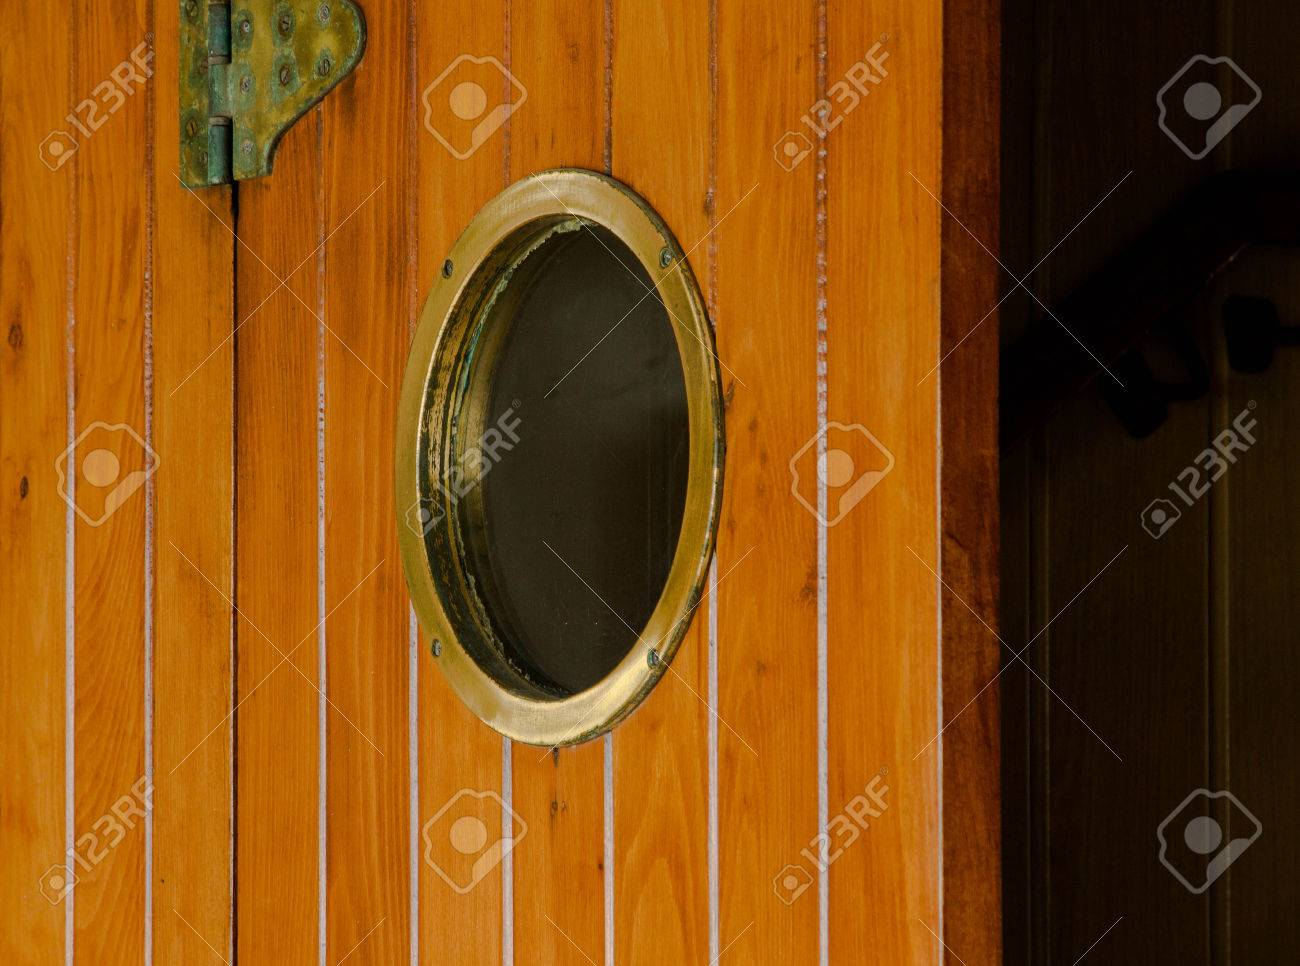 The Old Brown Wooden Ship Door With Round Window